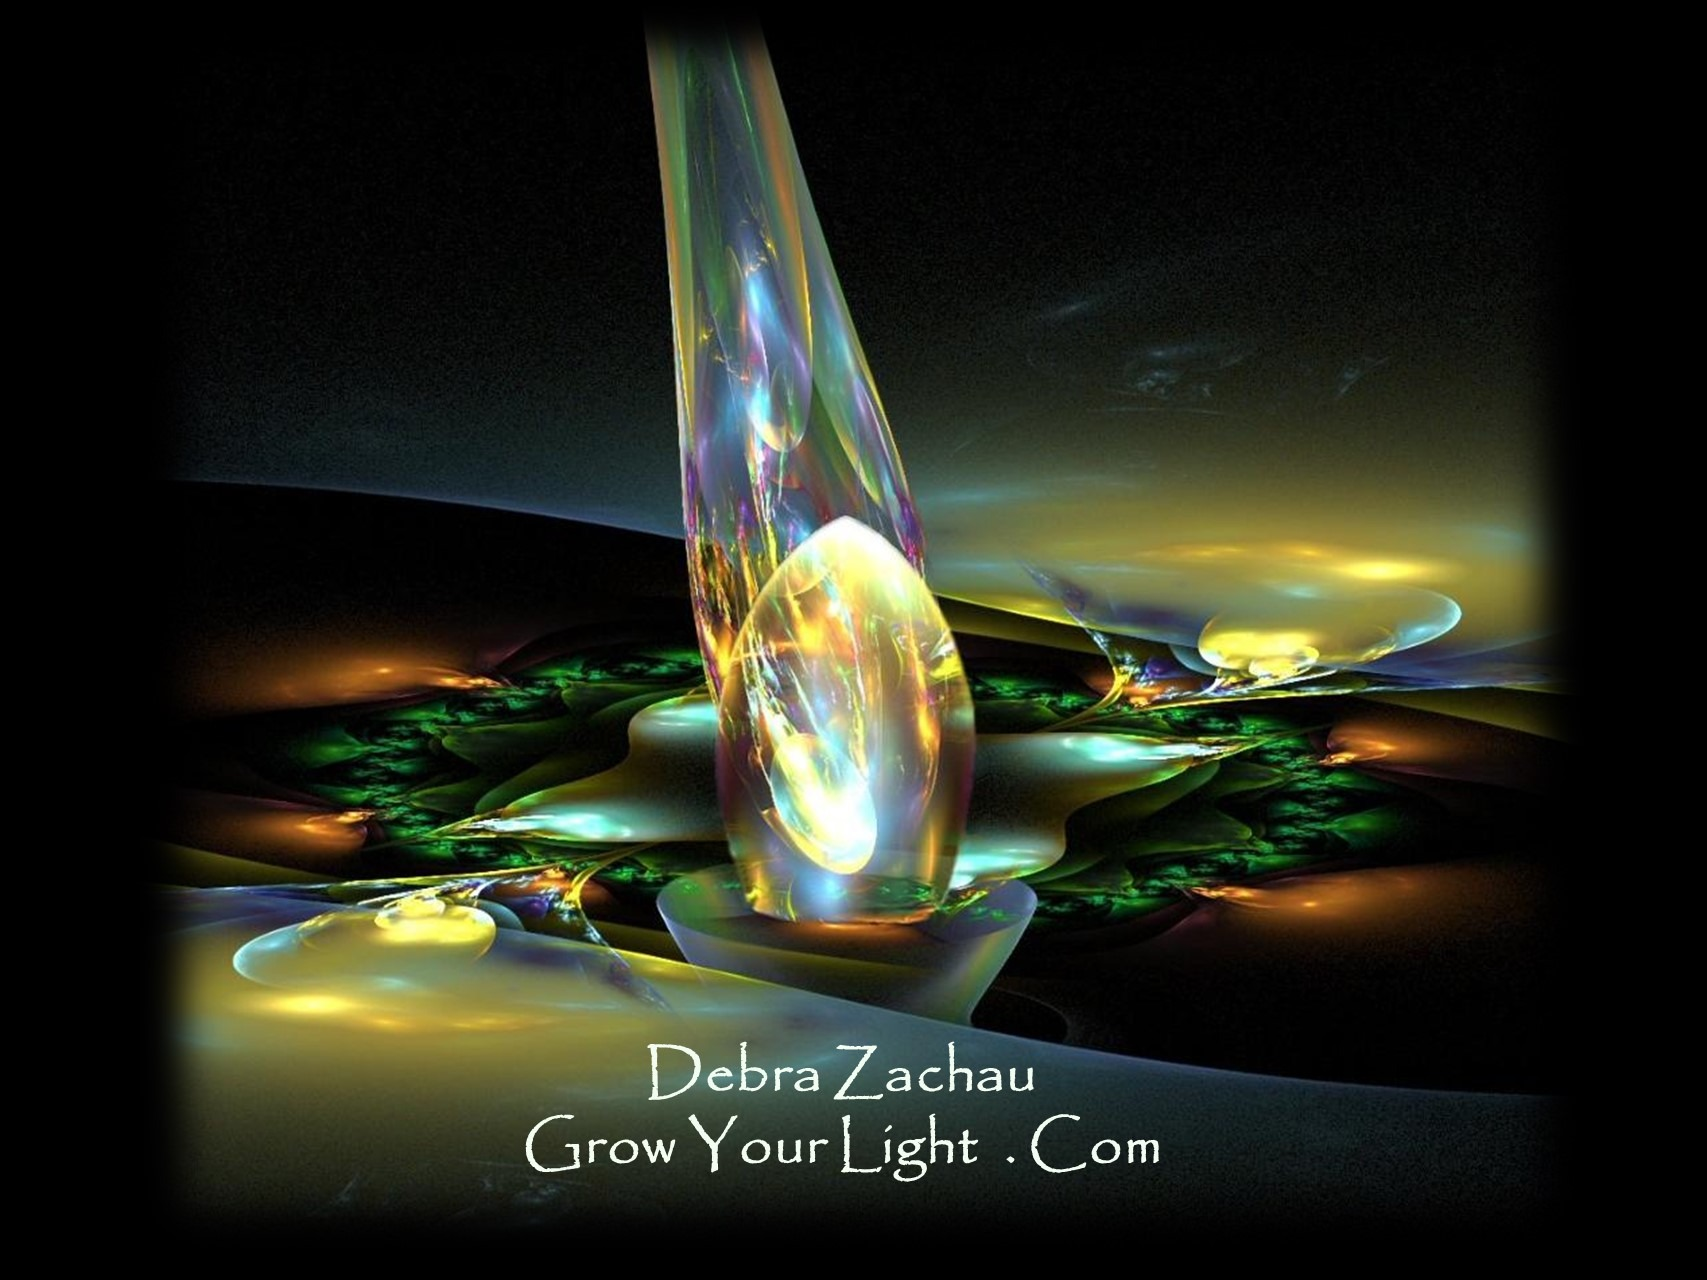 Grow Your Light with Debra Zachau